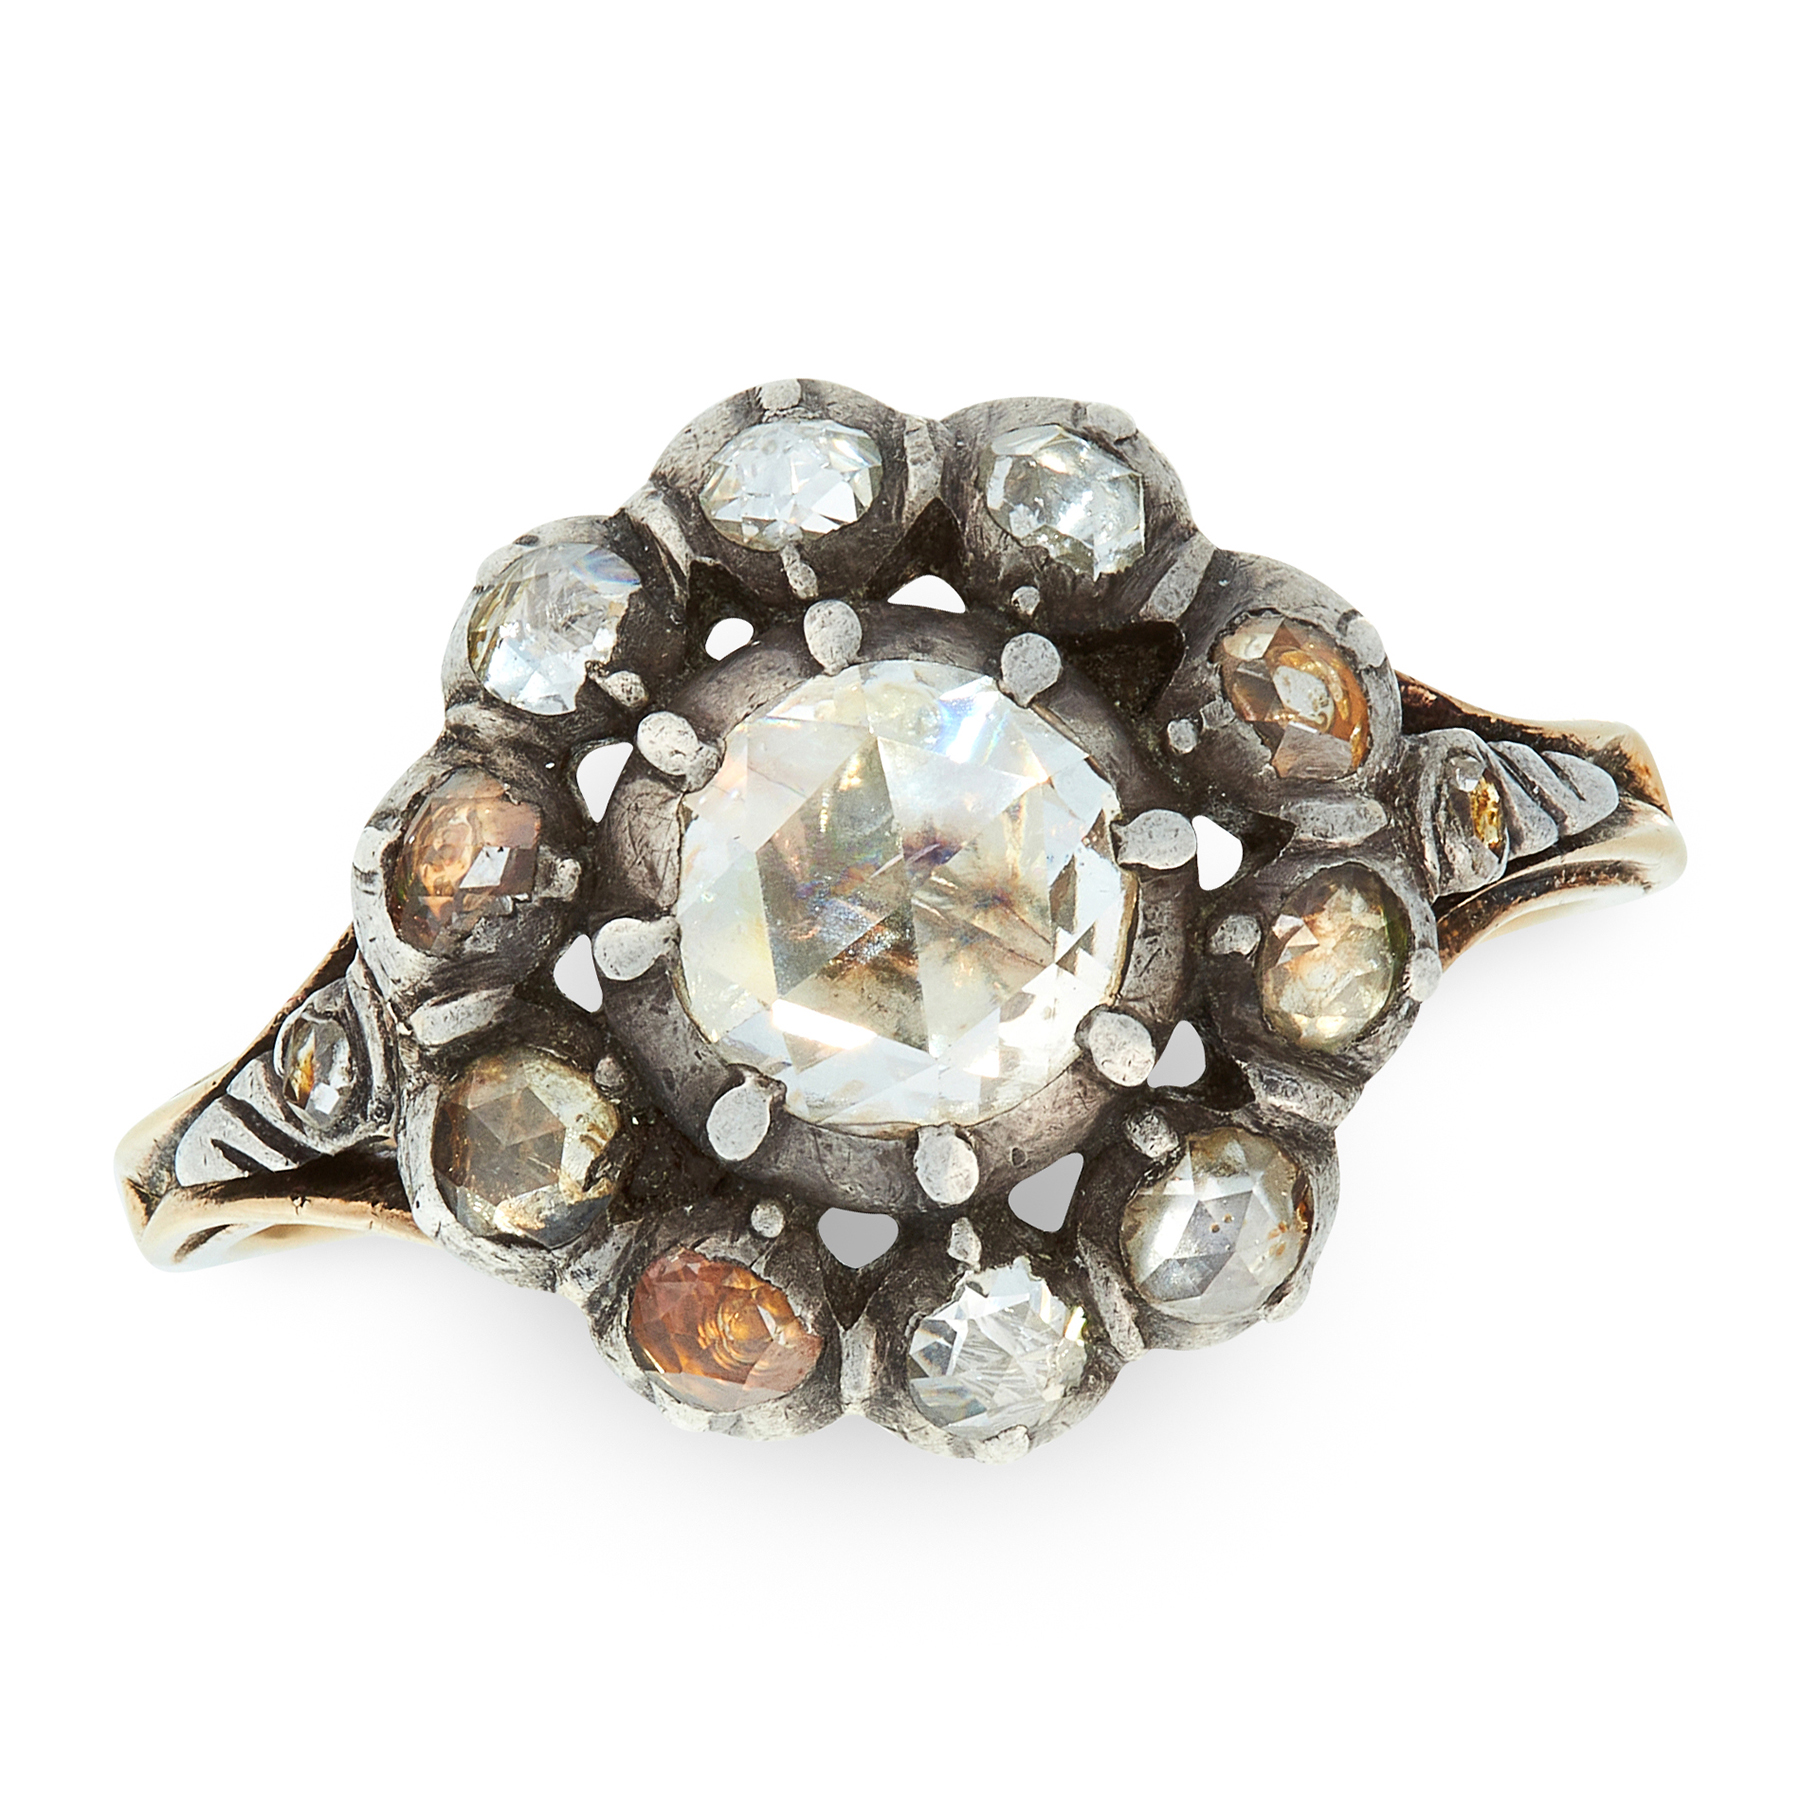 AN ANTIQUE DIAMOND CLUSTER RING in yellow gold and silver, set with a cluster of rose cut